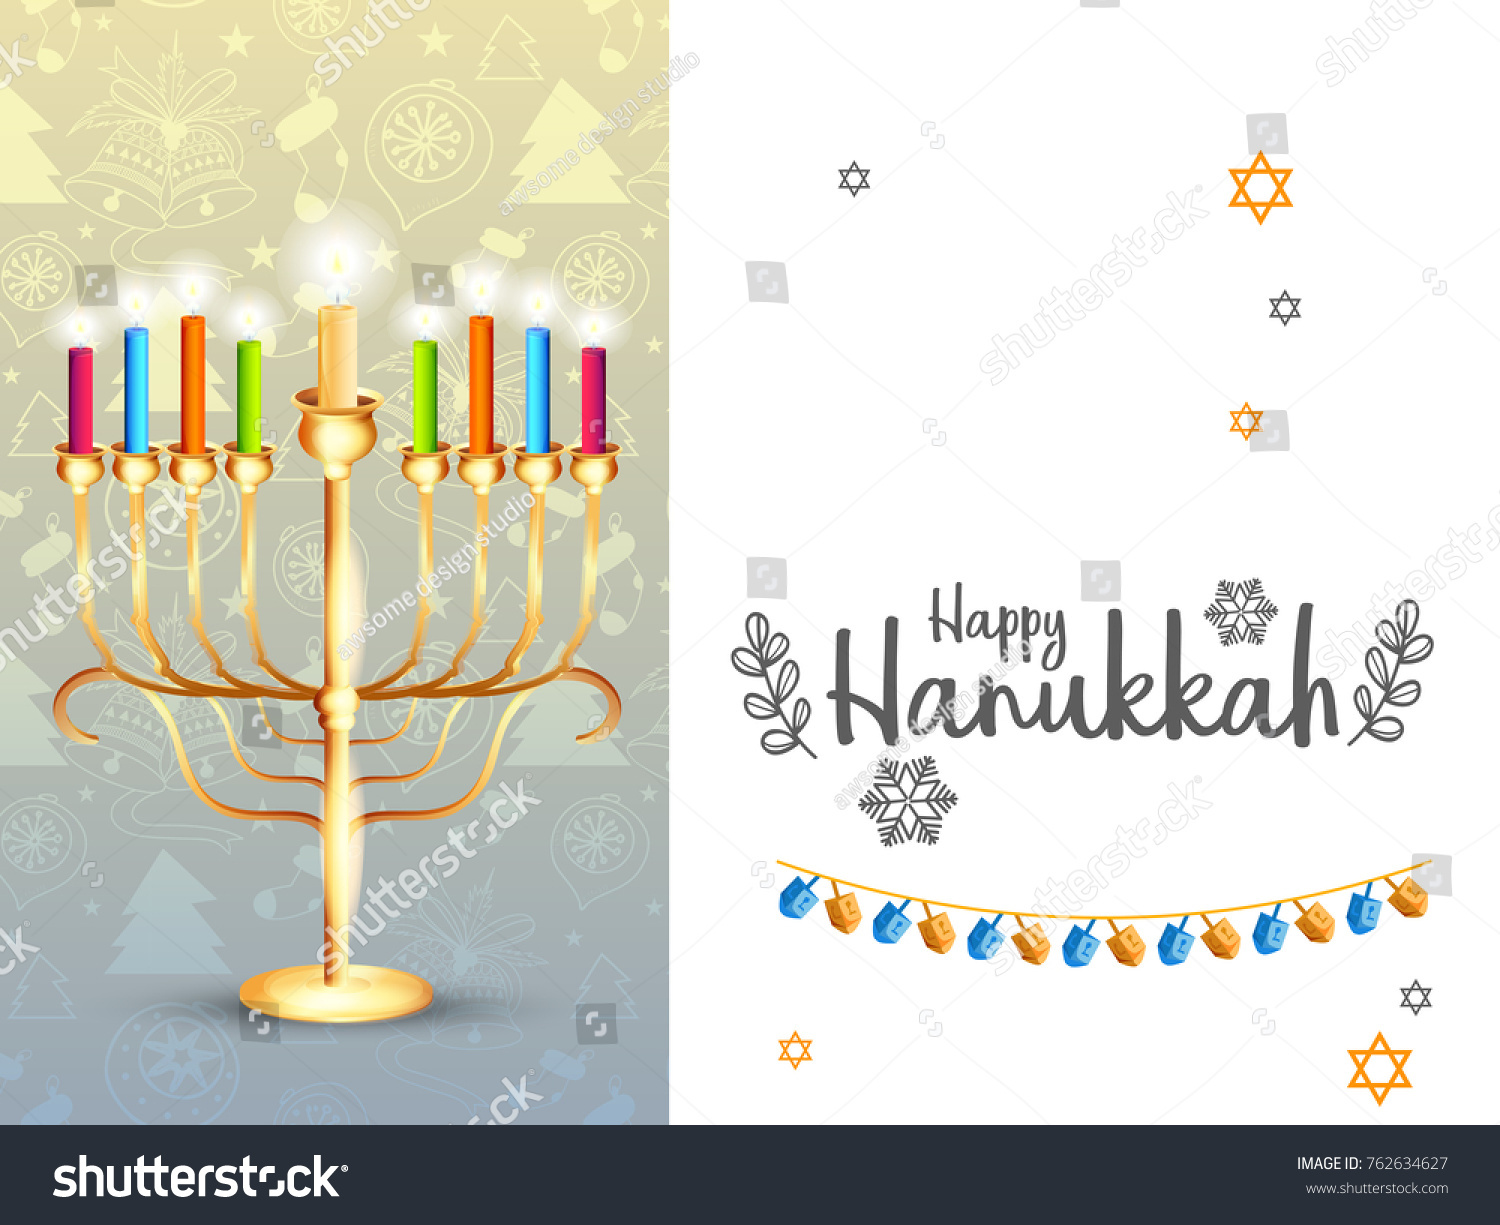 Hanukkah Greetings Sayings Gallery Greetings Card Design Simple